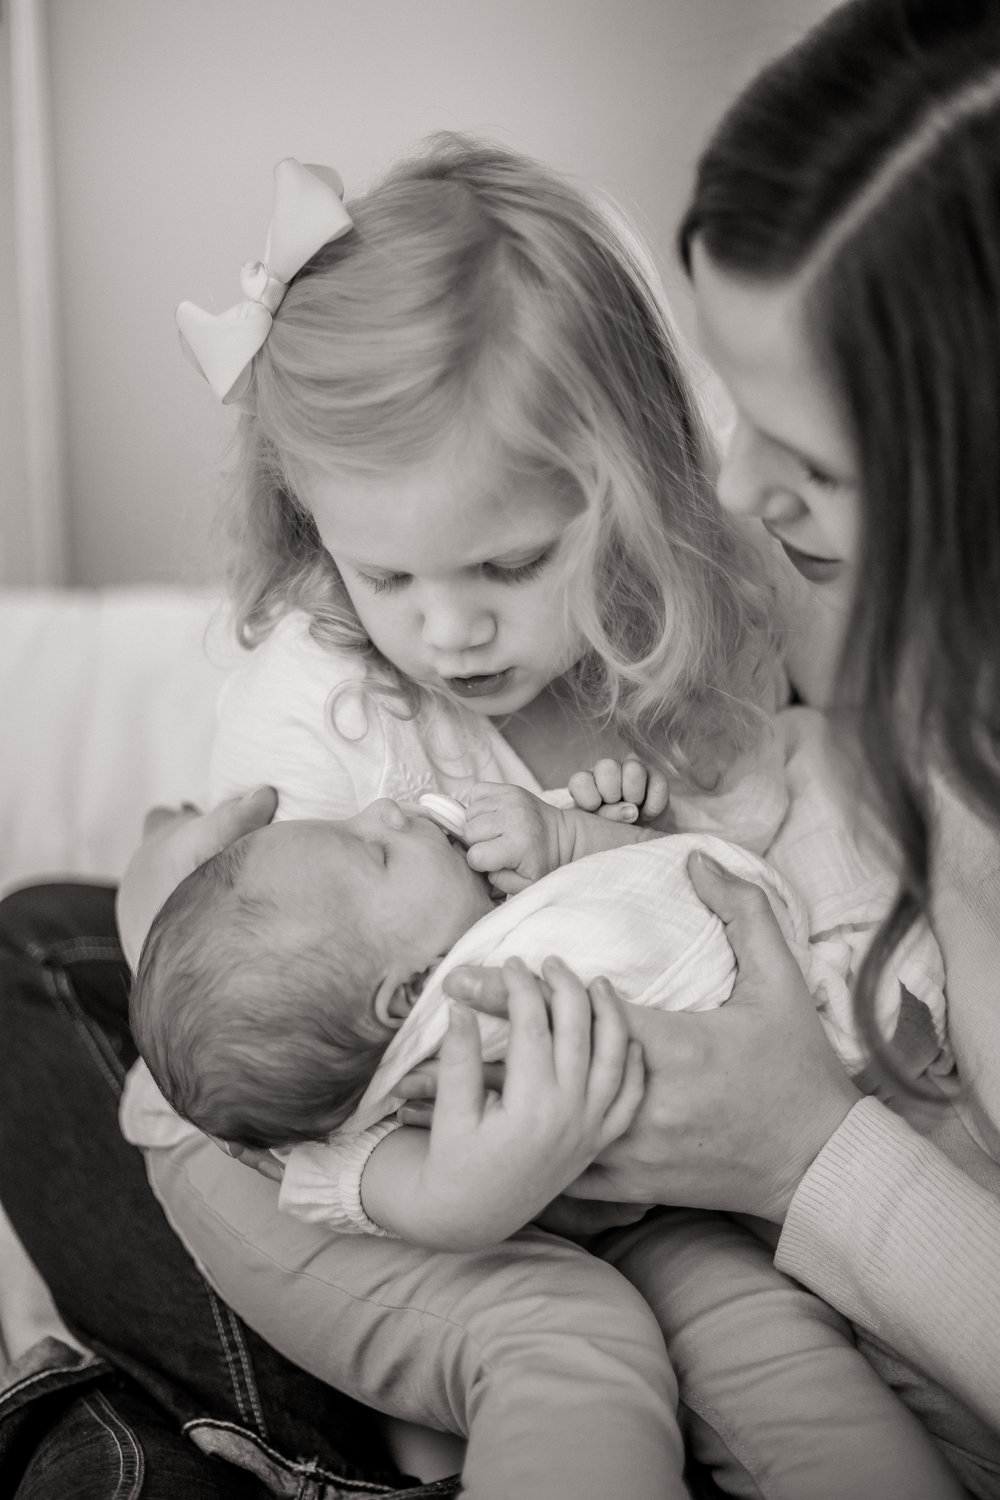 Big-Sister-Shushing-Baby-Brother-during-Newborn-Lifestyle-Session.jpg